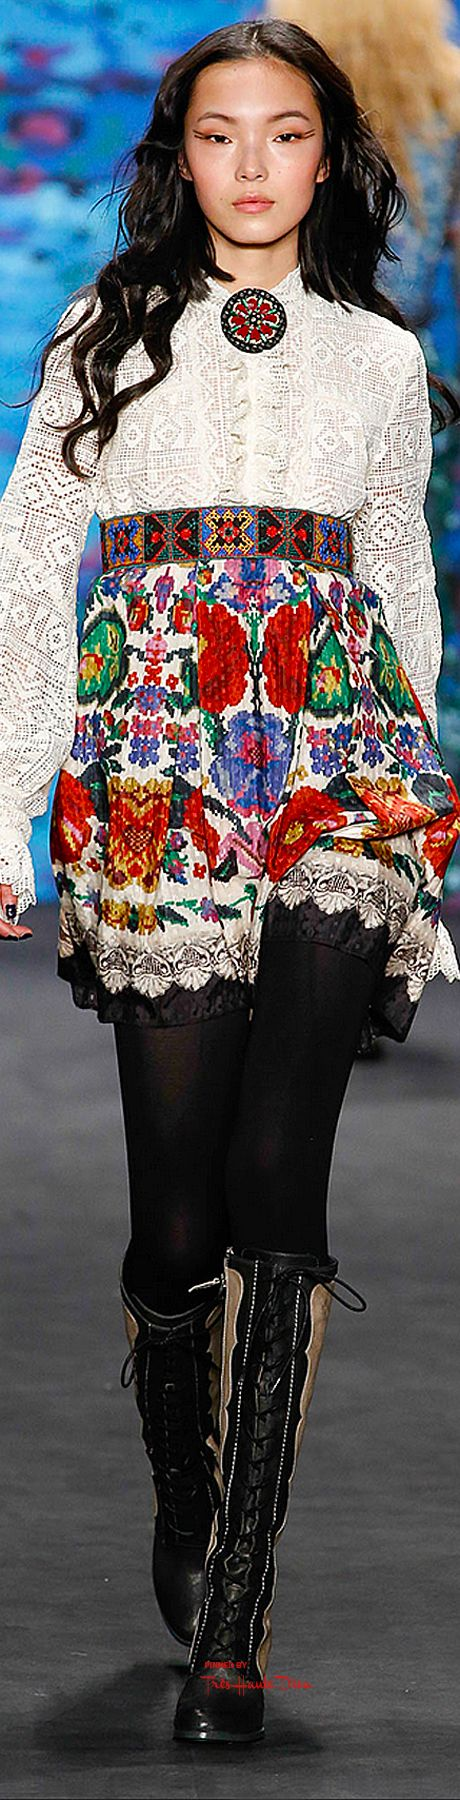 Anna Sui Fall/Winter 2015-2016